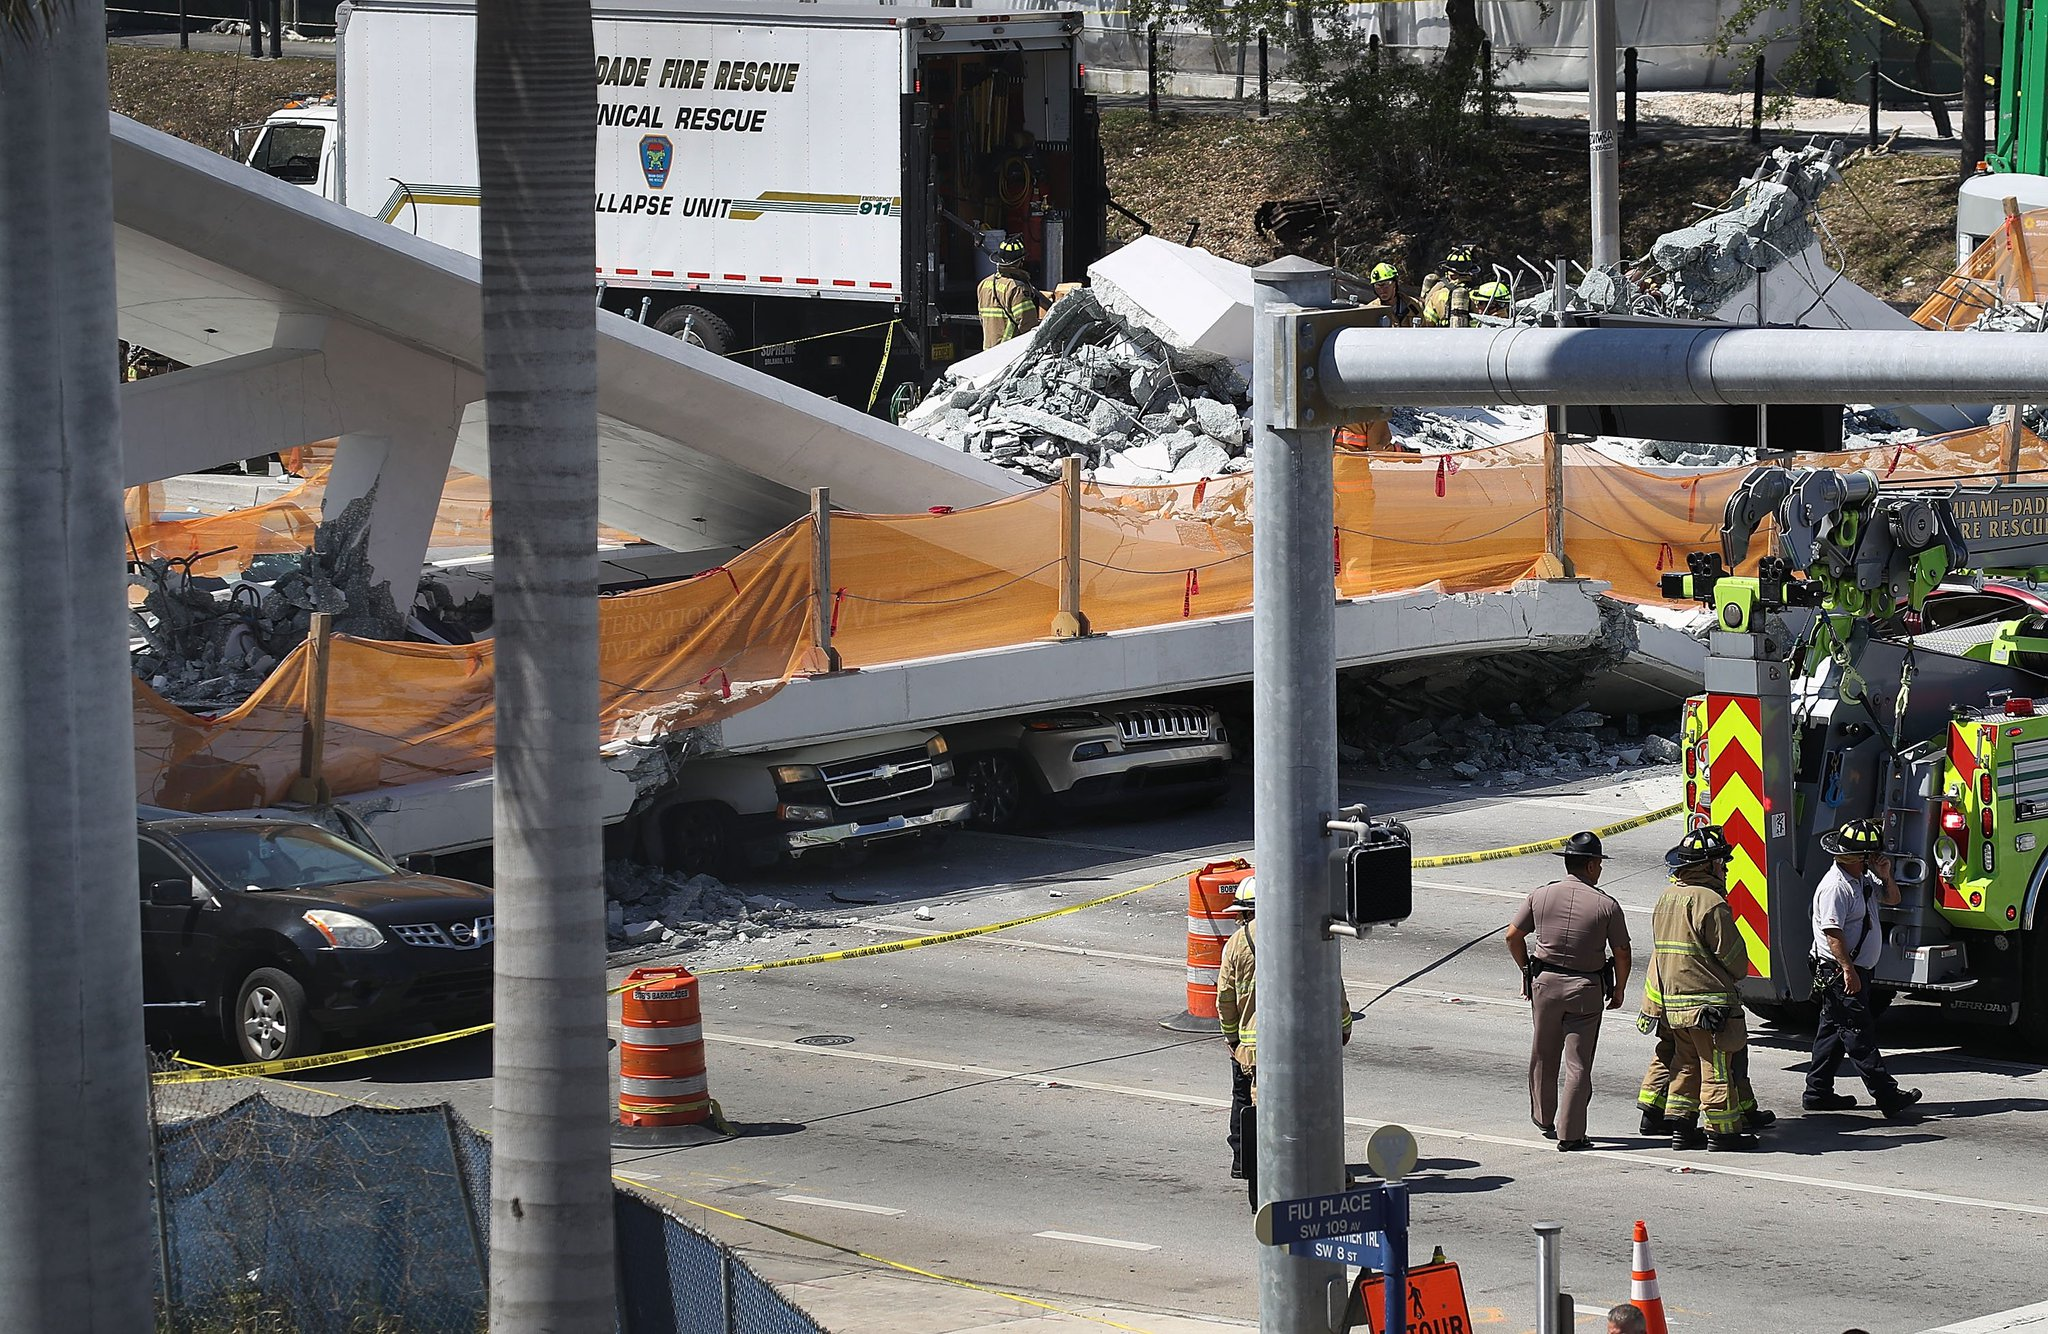 @nbc6 Photo shows vehicles crushed under collapsed pedestrian bridge in Miami. https://t.co/XO1ONcRrdK https://t.co/eErH5TbH55